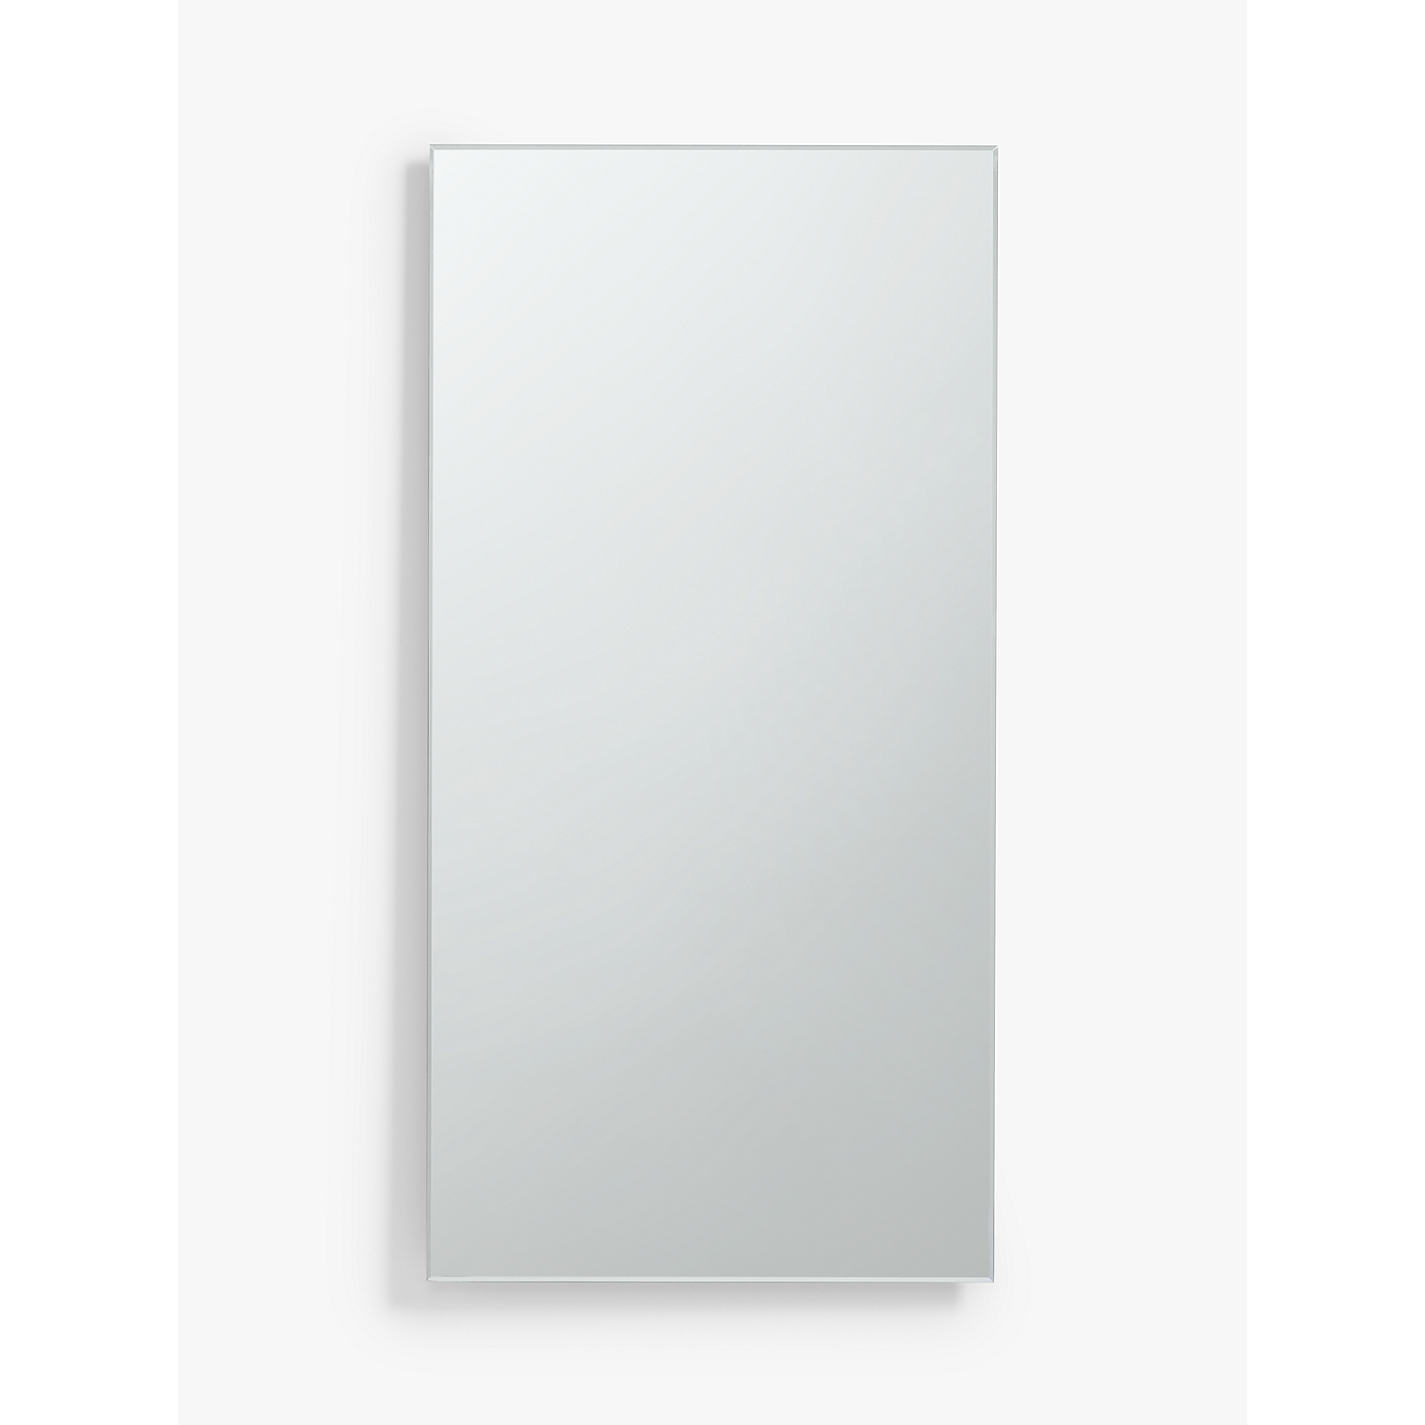 Buy John Lewis Double Mirrored Bathroom Cabinet Online At Johnlewis.com ...